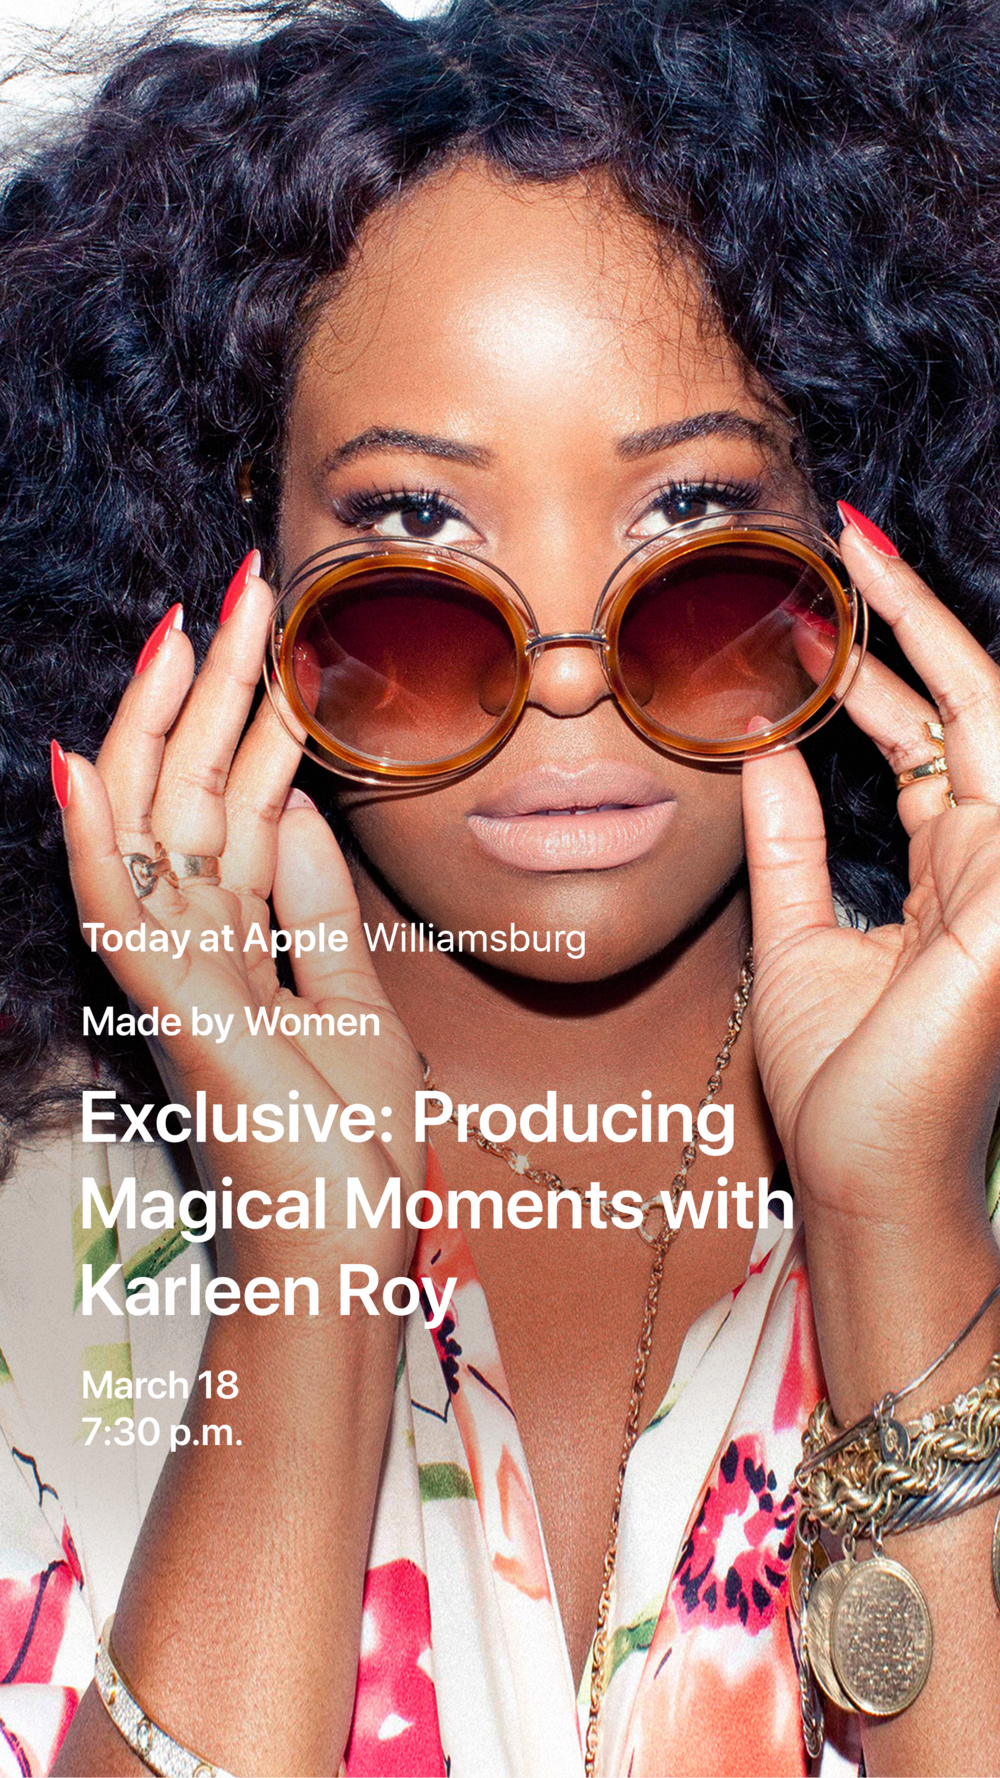 Karleen Roy interviewed by Rebelleion Management client Tracy G. Open for all, RSVP below.